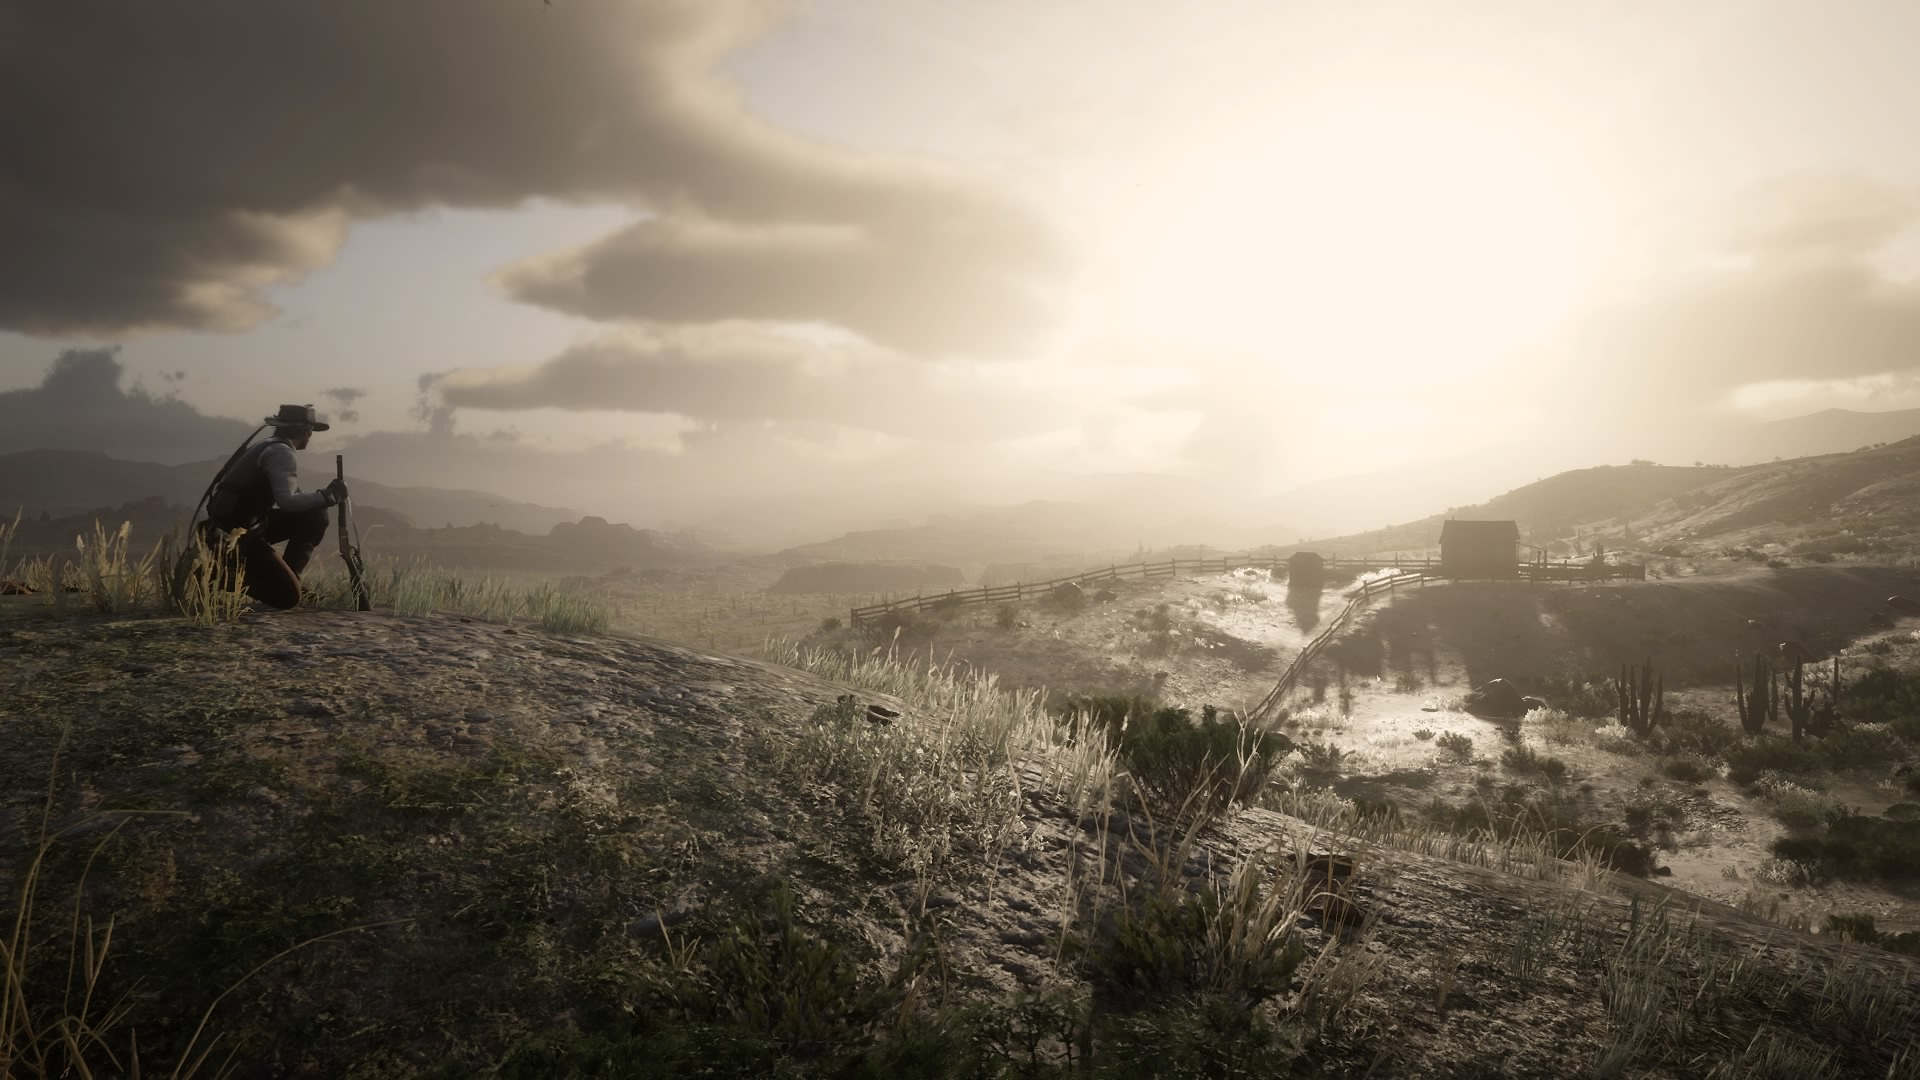 Red Dead Redemption 2's biggest success is loneliness